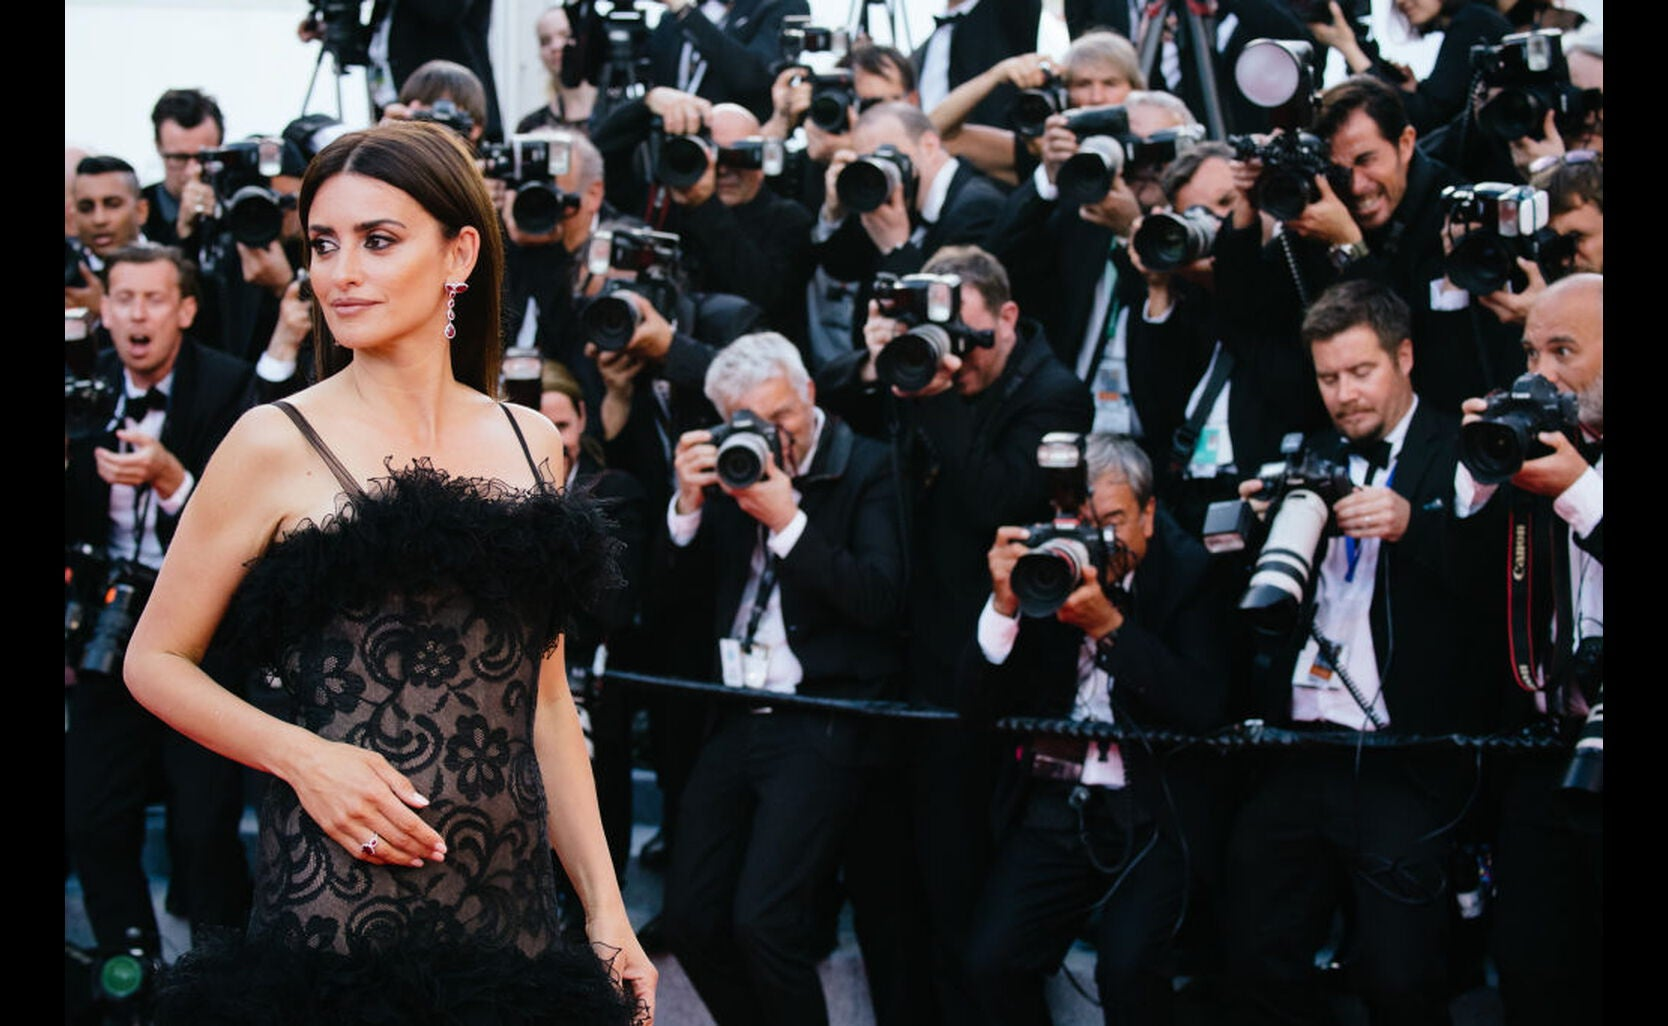 Penelope Cruz at the 2018 Cannes Film festival